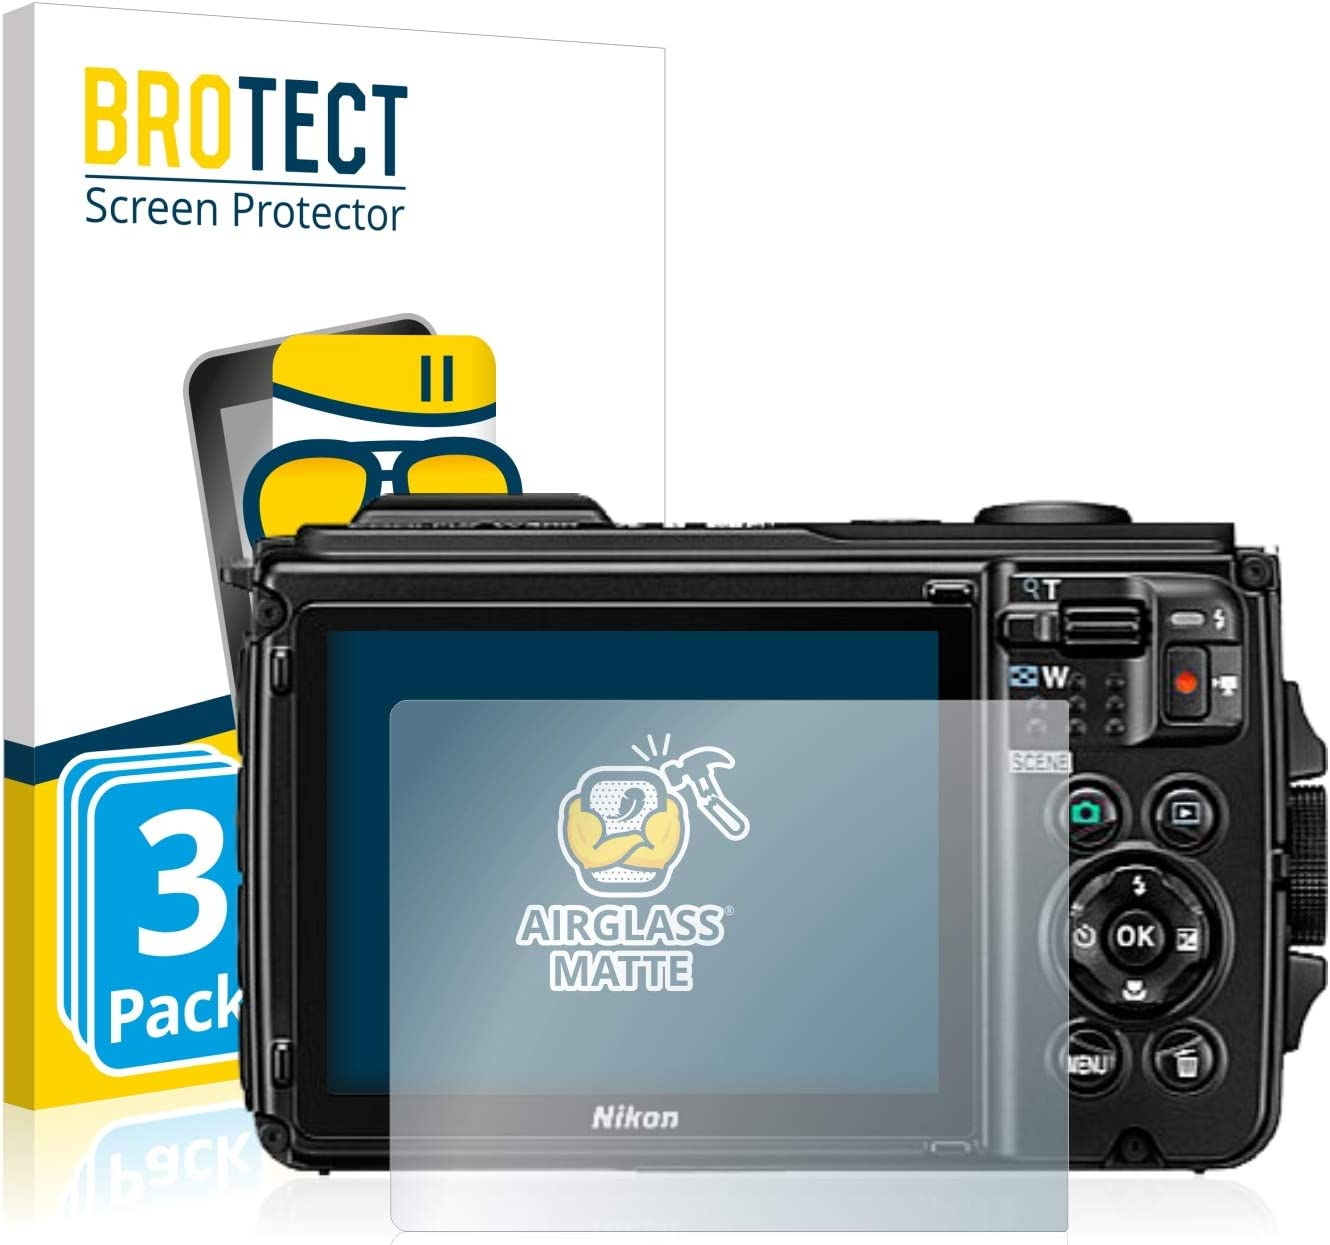 3 Pack brotect Anti-Glare Glass Screen Protector compatible with Nikon Coolpix W300 9H Glass Protector Matte